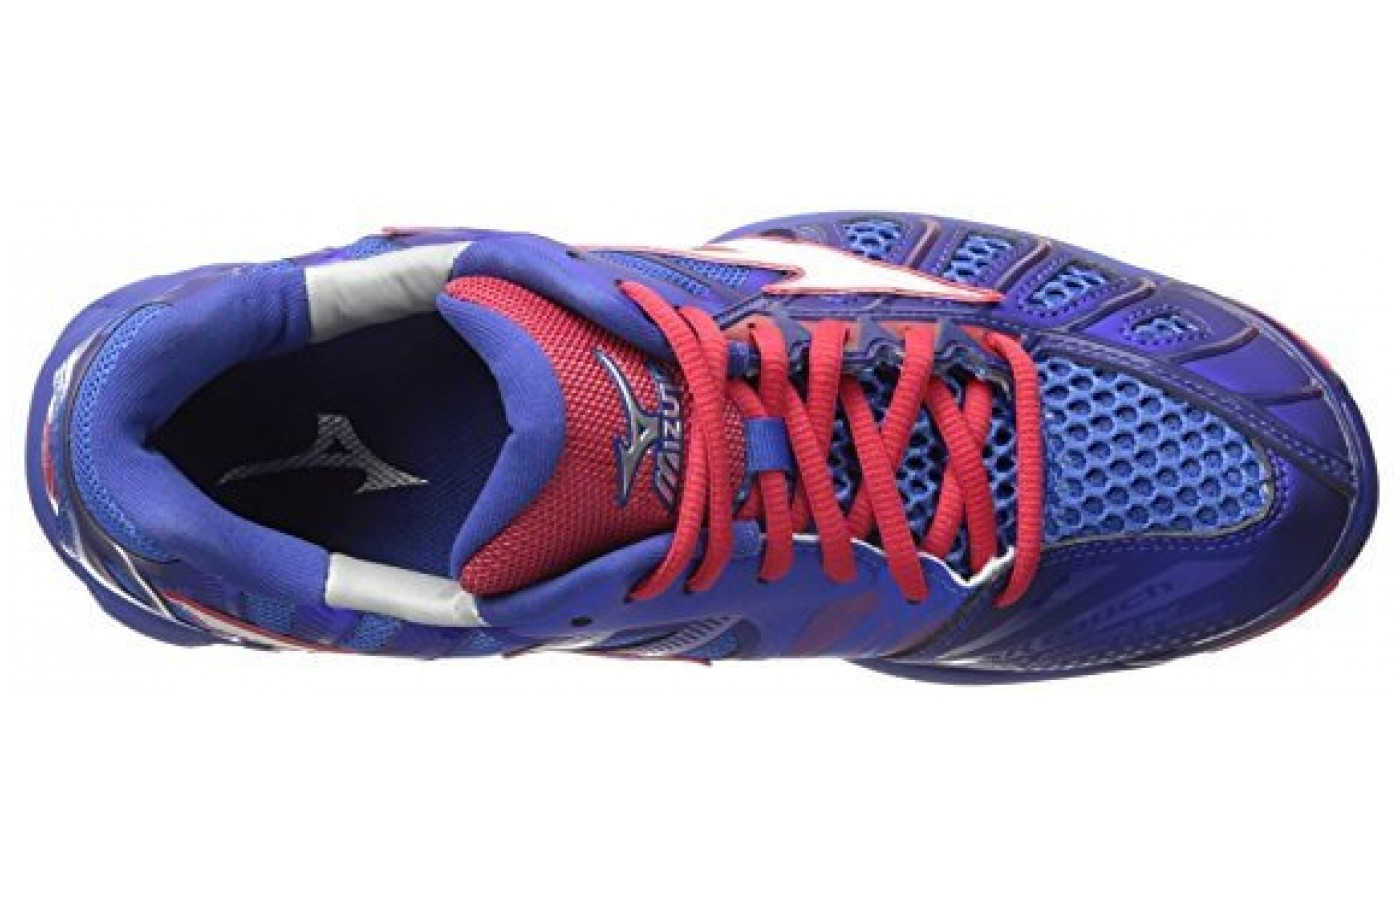 The mizuno wave tornado x is made with air mesh for breathability